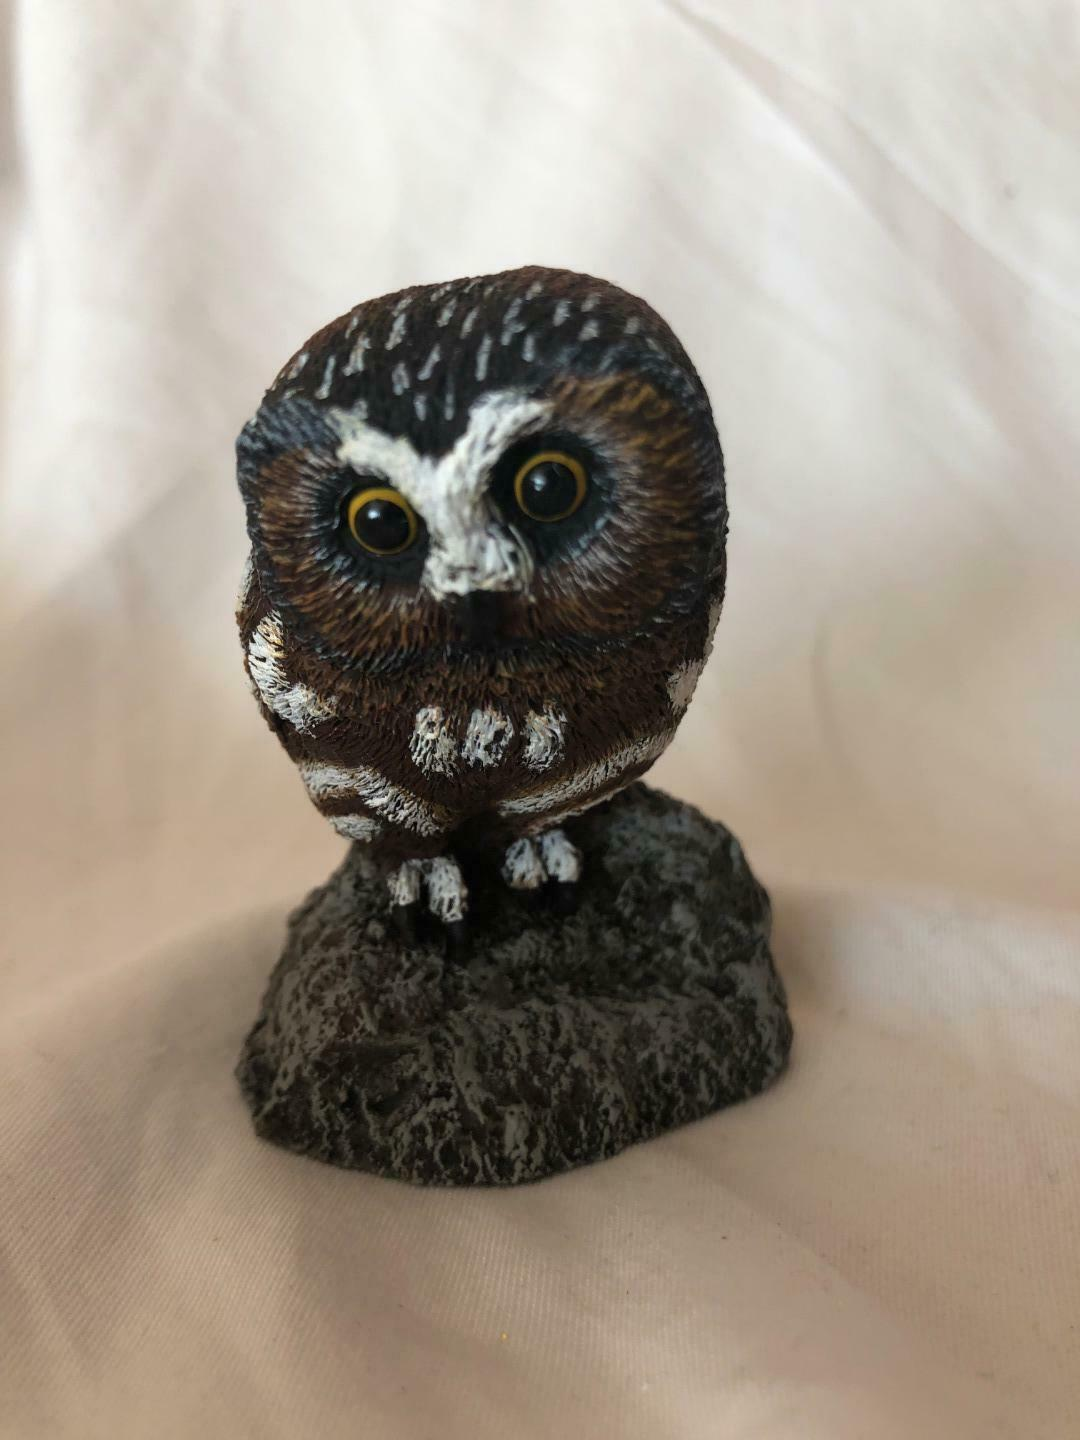 Cold Bronze Cast Owl Vintage Figurine Crafted and Hand Painted Made in U.S.A